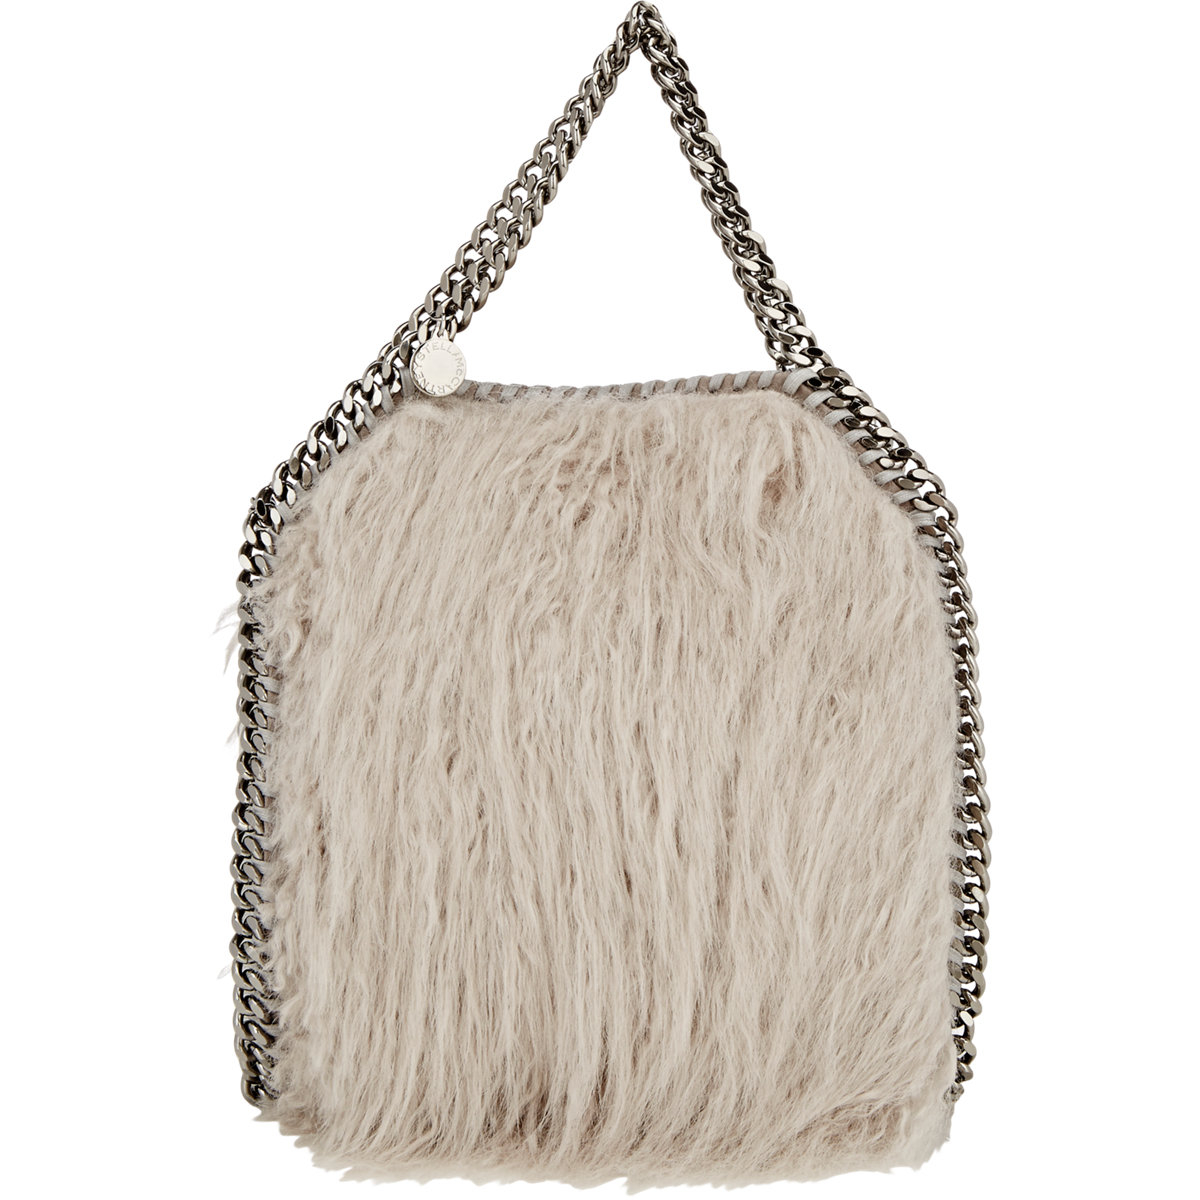 Lyst - Stella McCartney Faux-fur Falabella Mini-tote in Gray 3a3fd056beecc